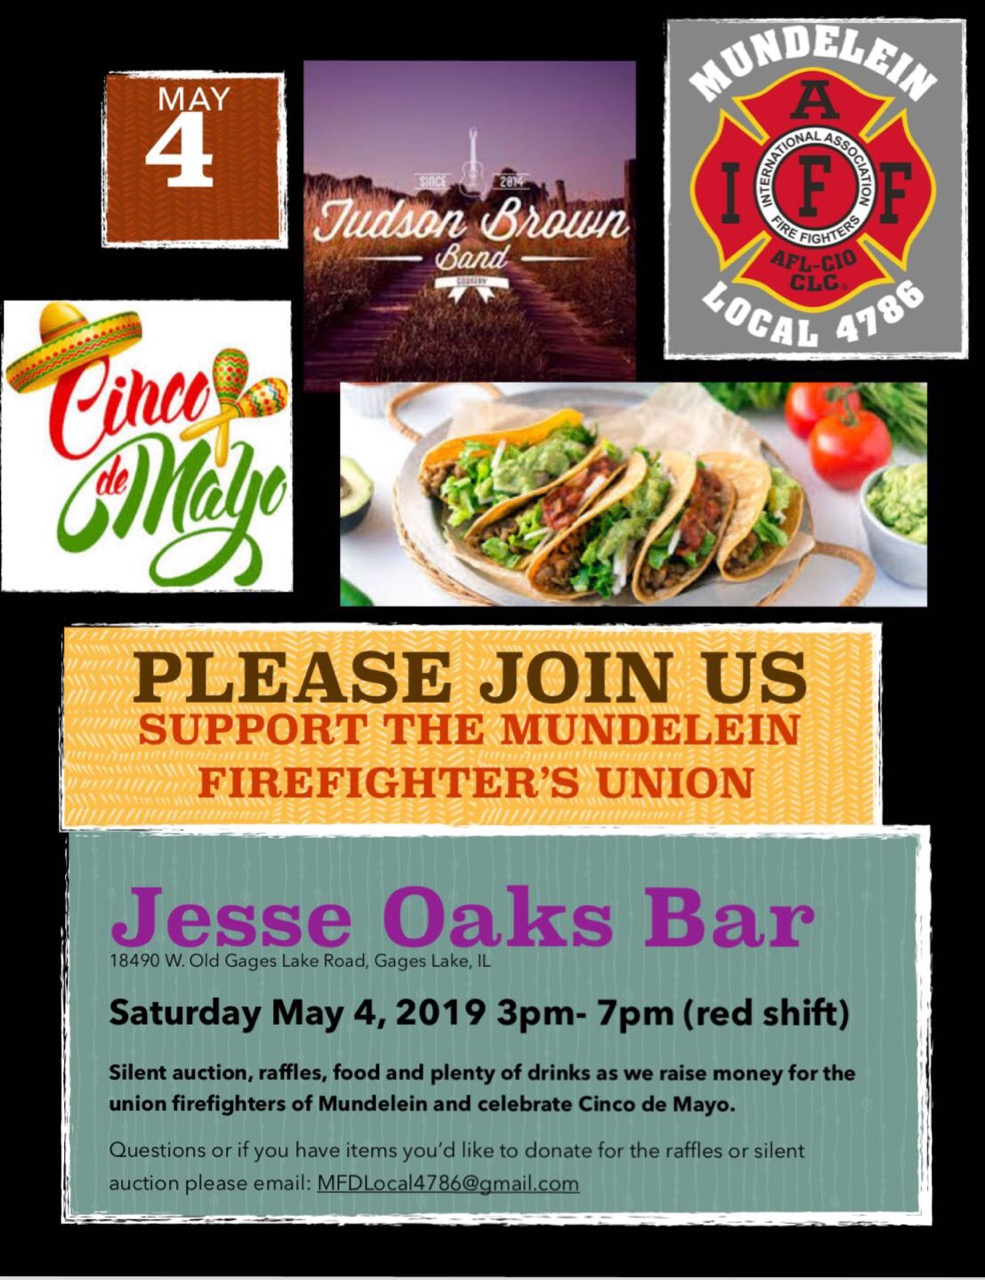 May 4, 2019 - Mundelein Firefighter's Union Fundraiser at Jesse Oaks 3pm to 7pm on Saturday, may 4th.